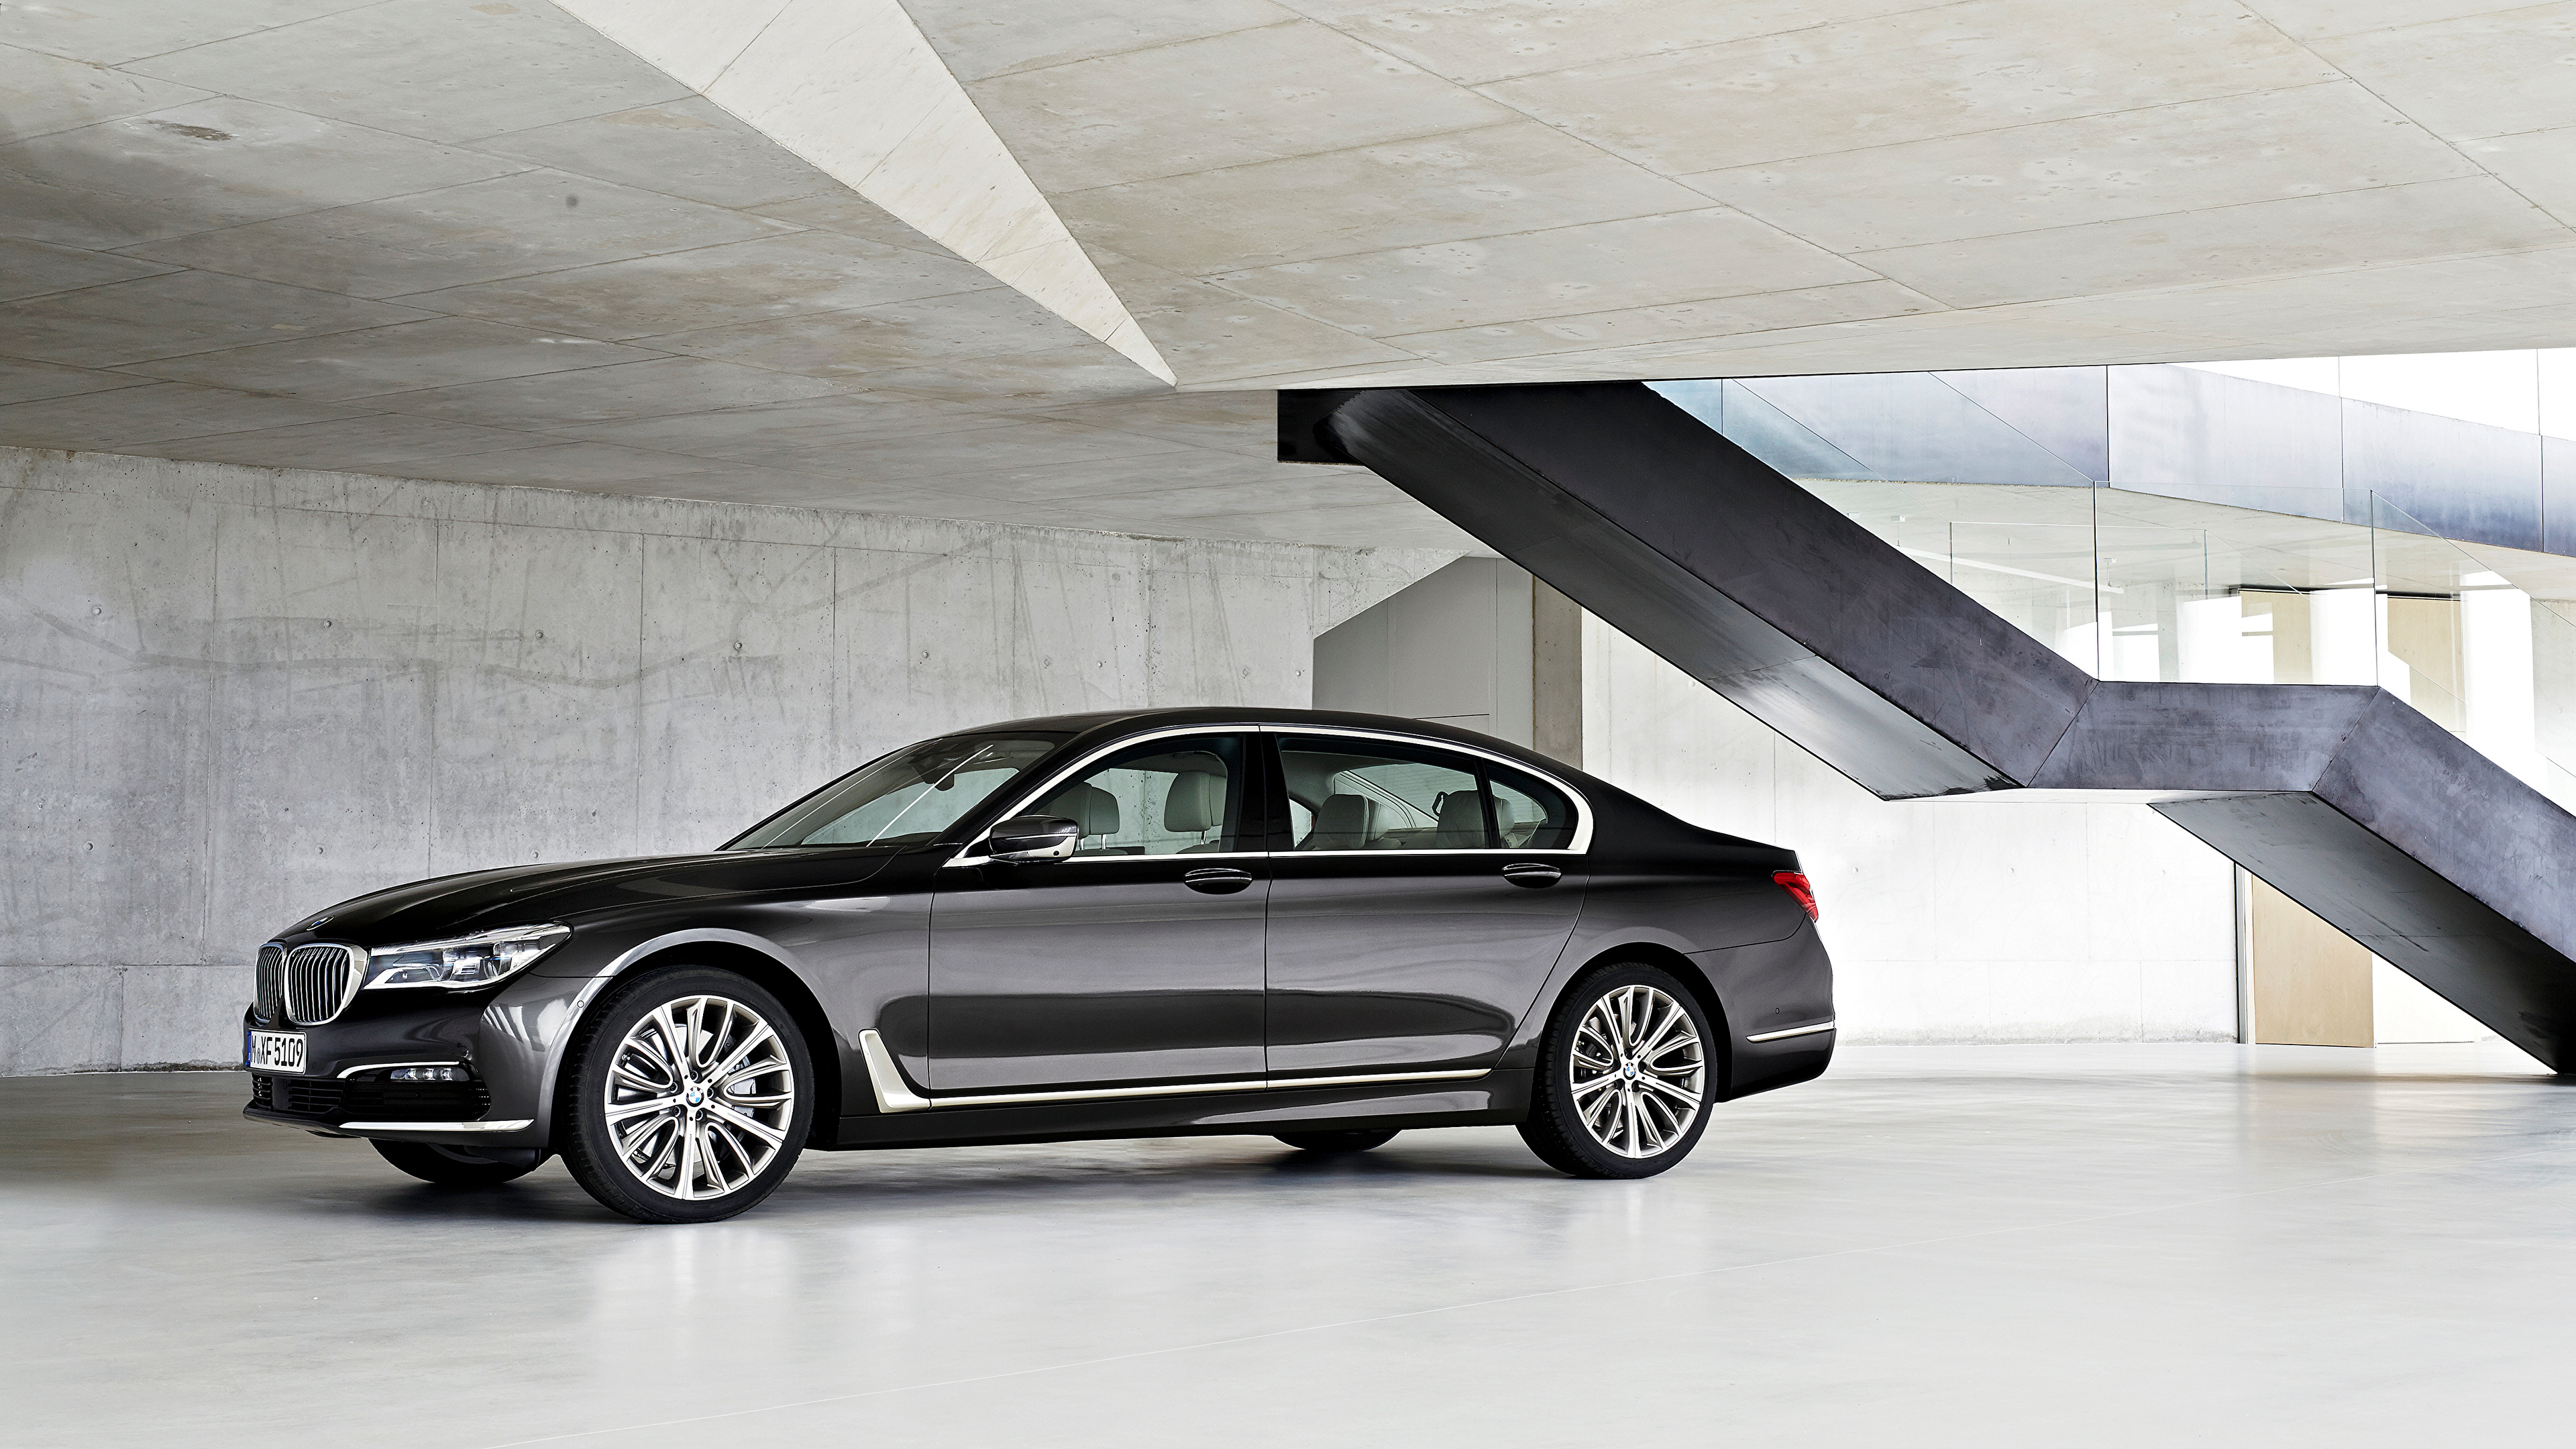 Bmw 7 special edition exclusive front side подборки